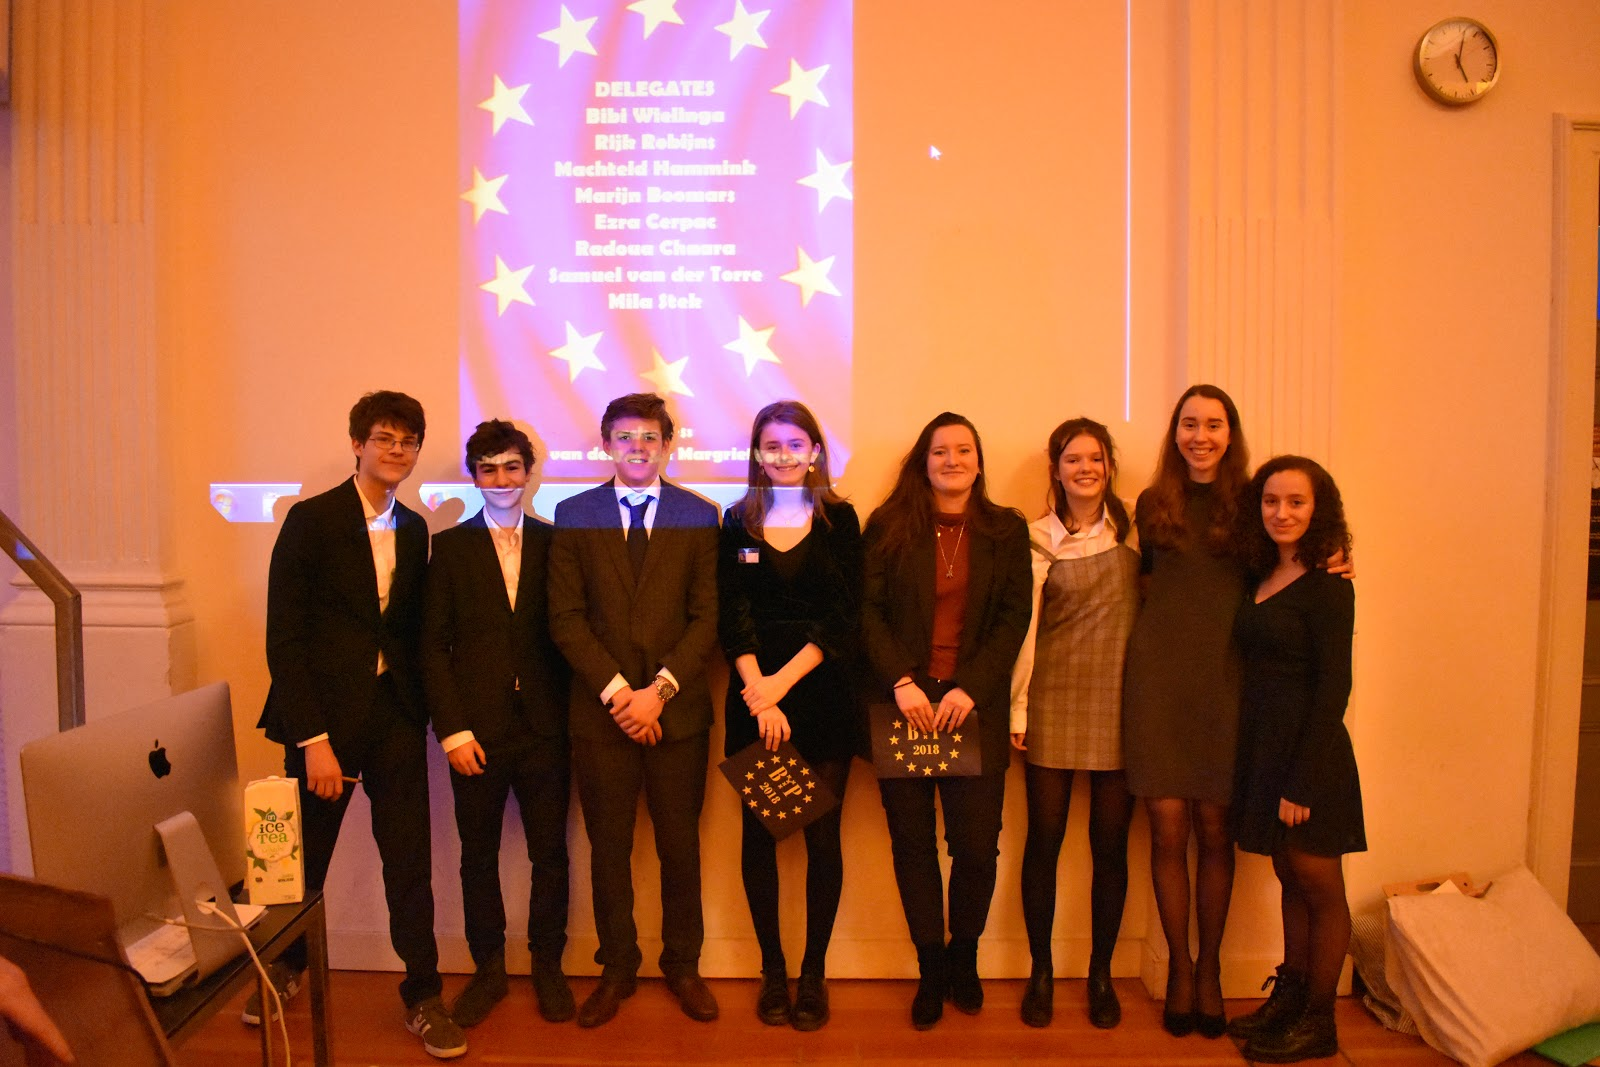 Barlaeus youth parliament final video byp from ifight on vimeo solutioingenieria Gallery